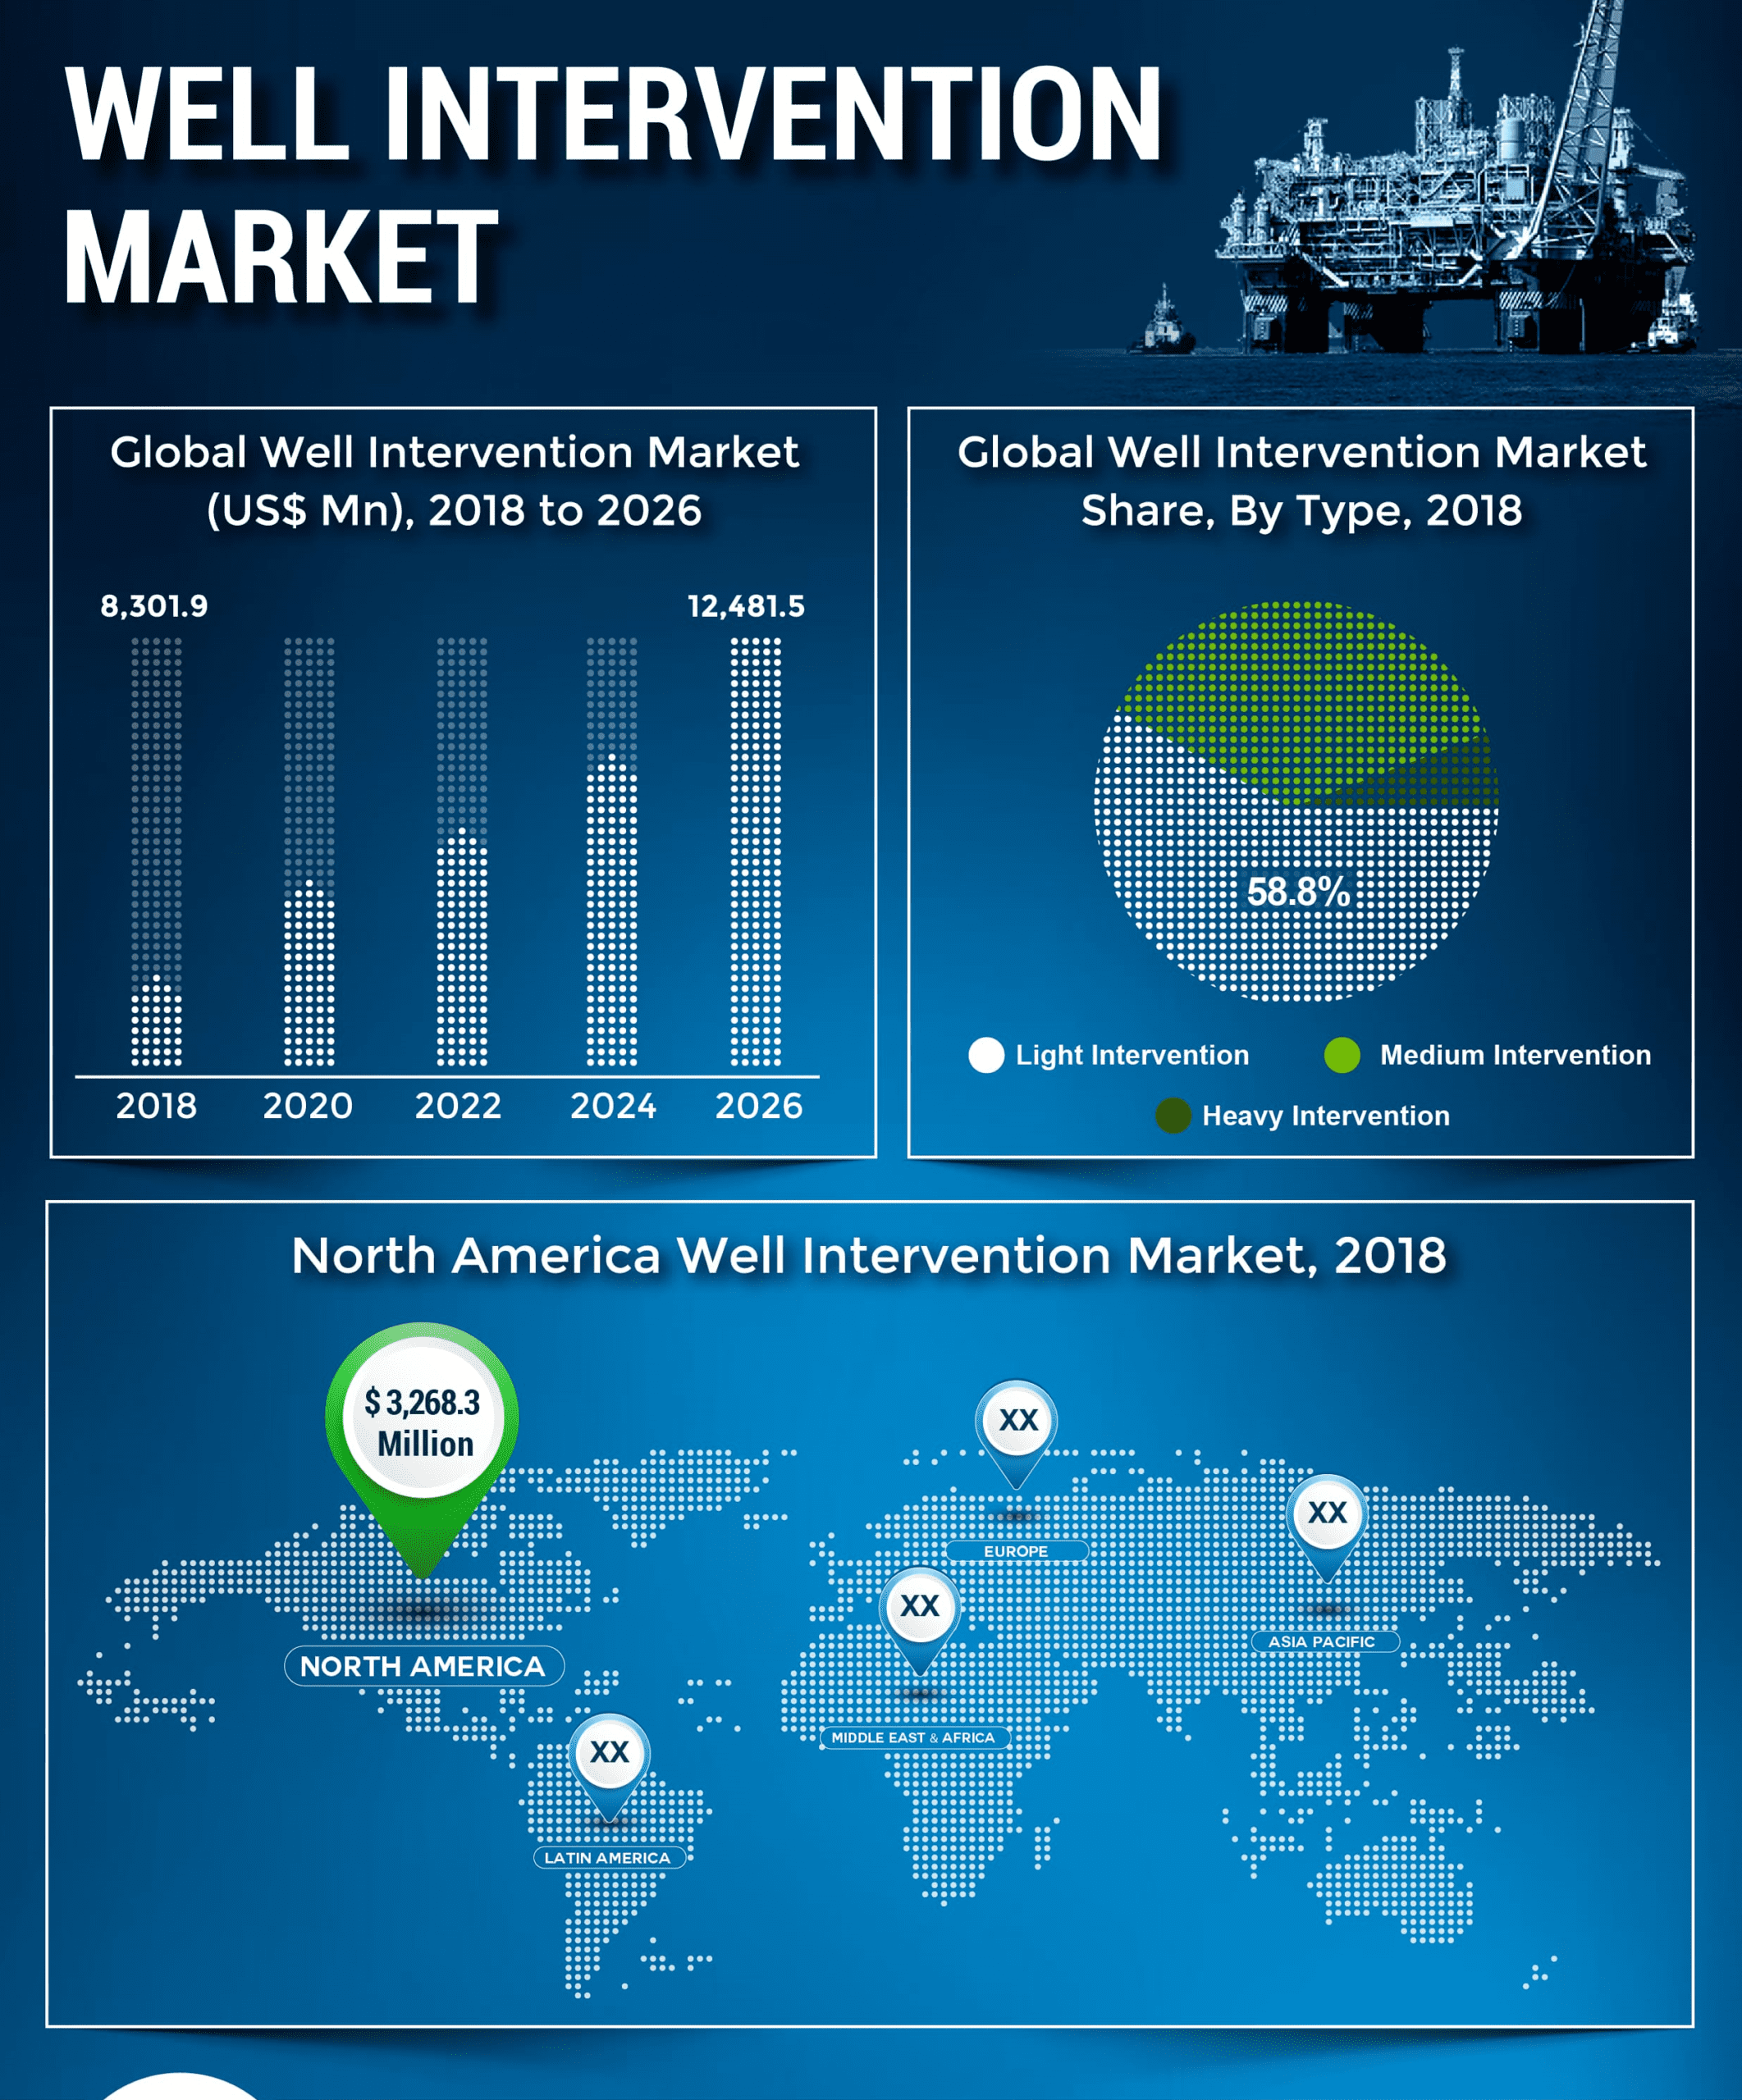 Well Intervention Market to Reach US$ 12.5 Bn by 2026, Increasing Investment in Offshore Assets to Drive Growth